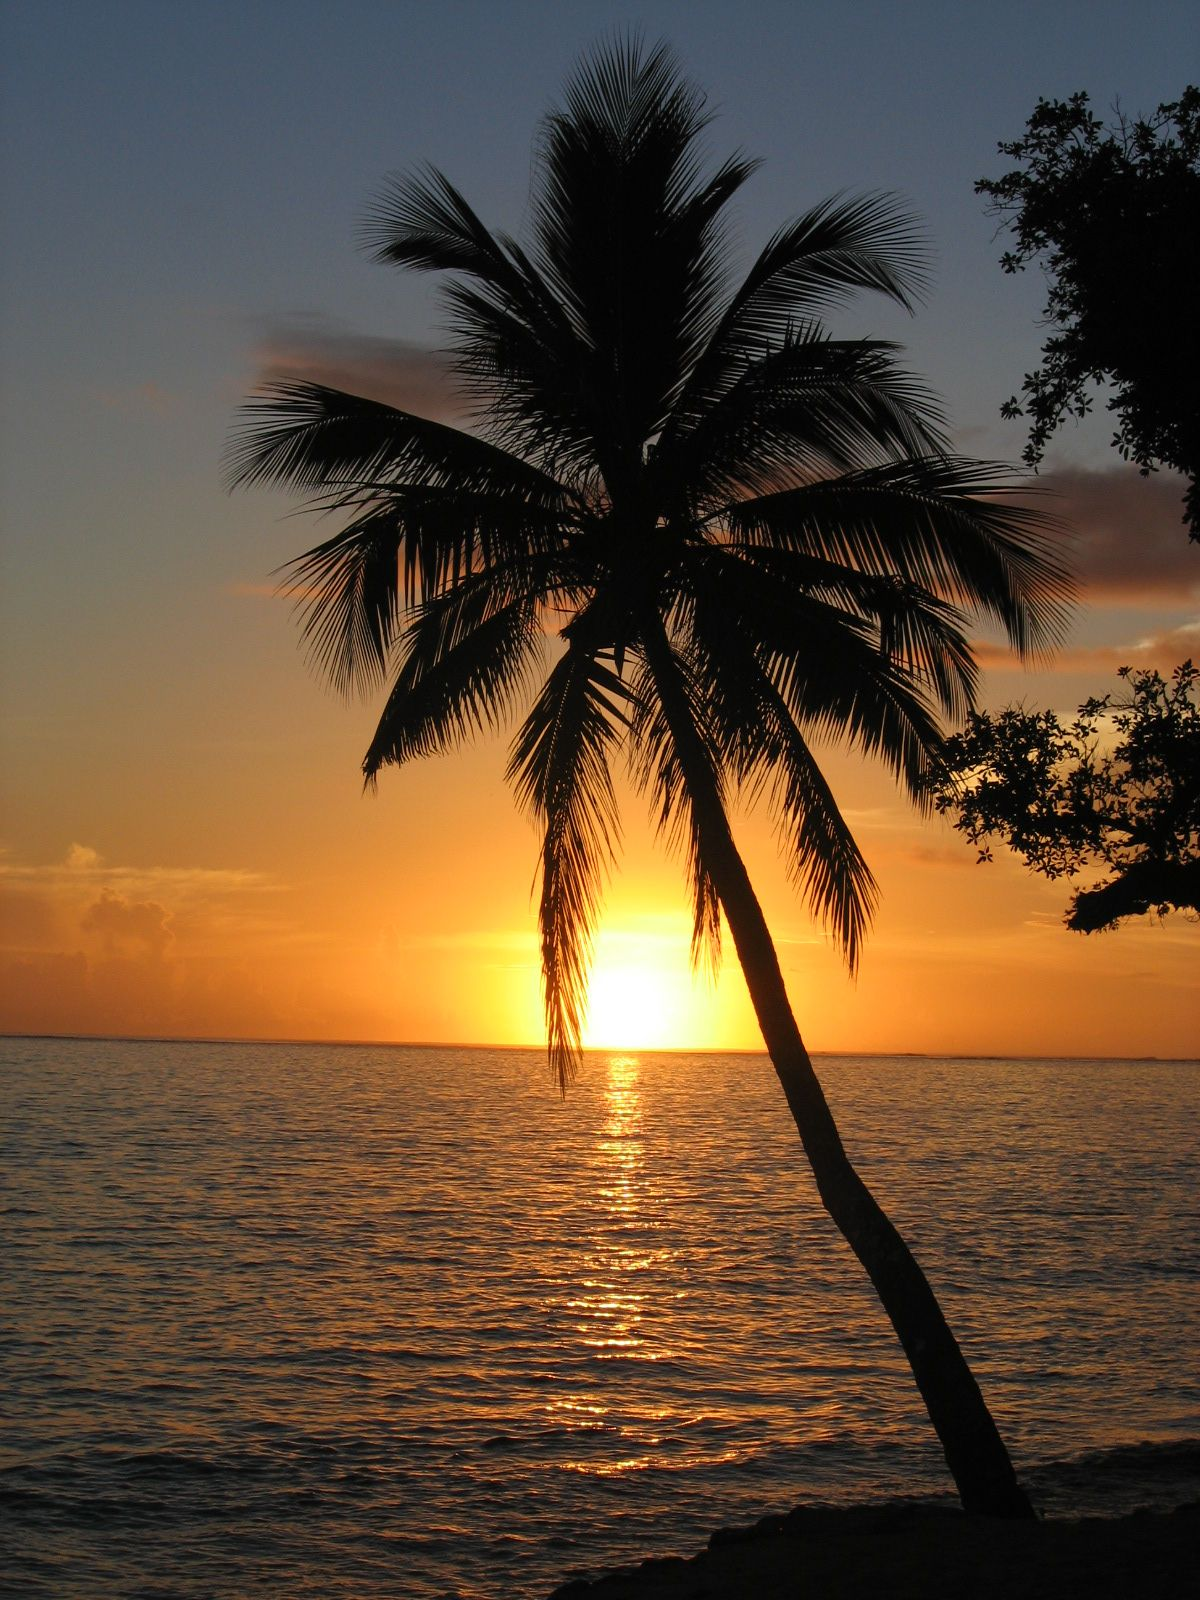 coconut palm tree - fiji | Gods creation | Pinterest | Palm, Sunset ...